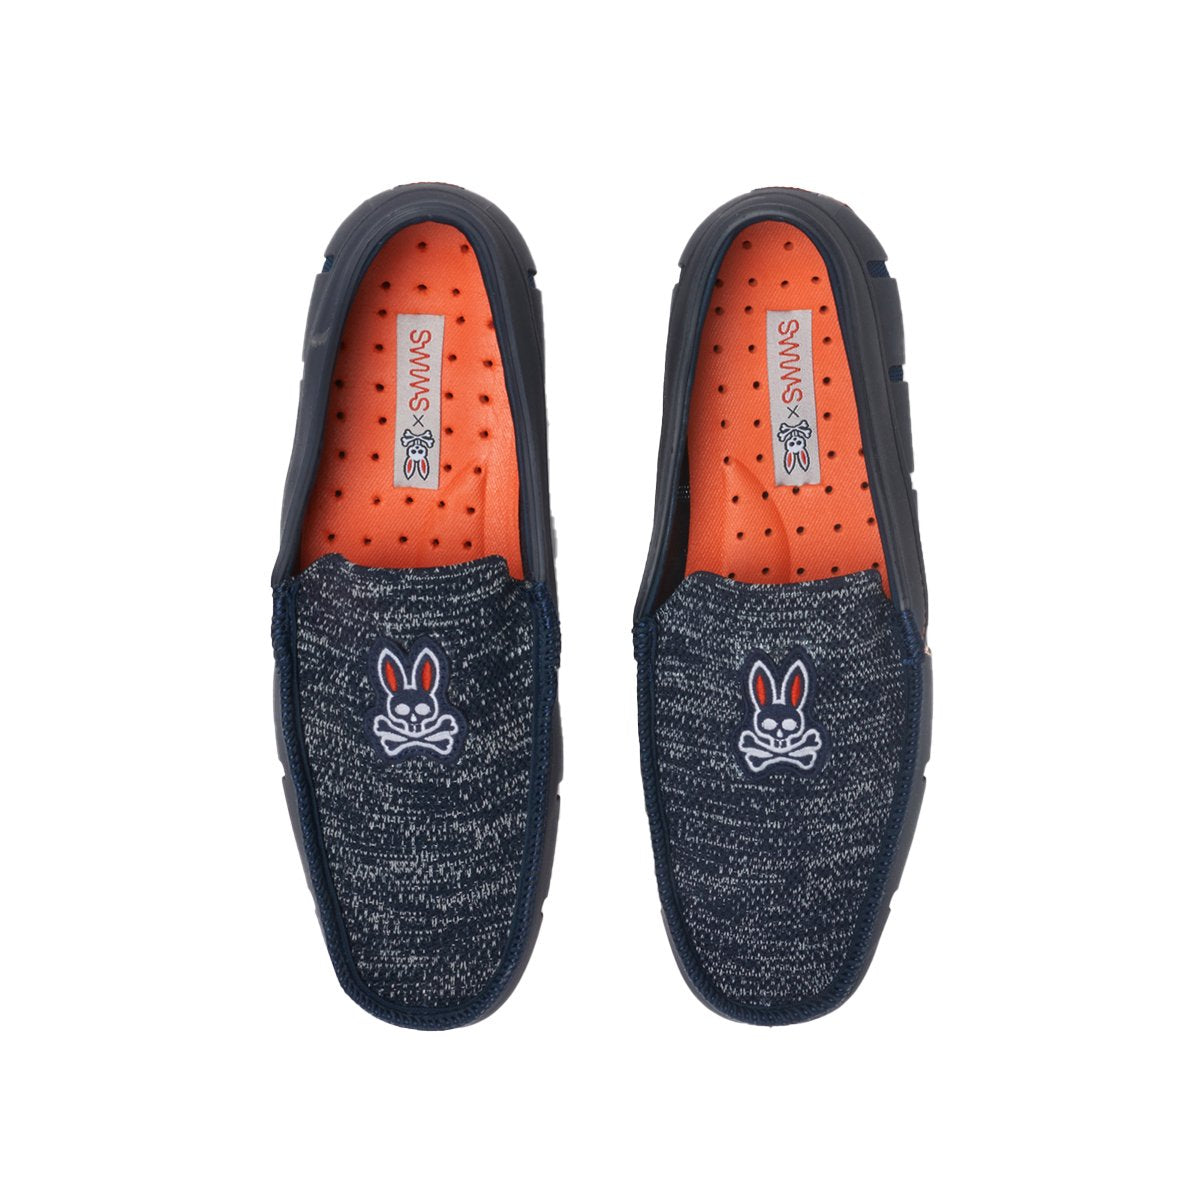 Psycho Bunny x SWIMS Classic Venetian Loafer - background::white,variant::navy